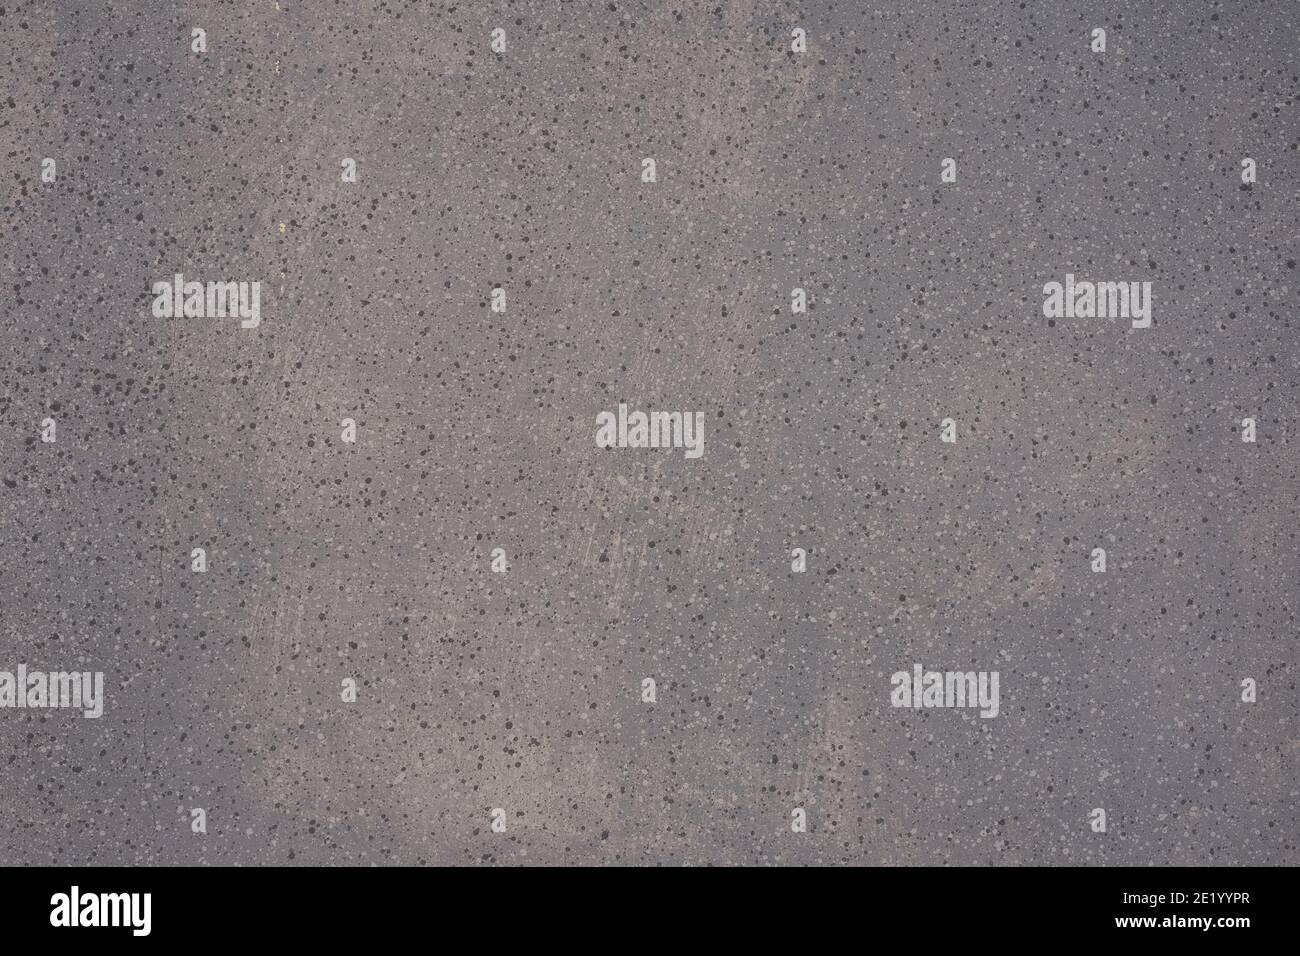 gray stucco background with abstract drawings Stock Photo